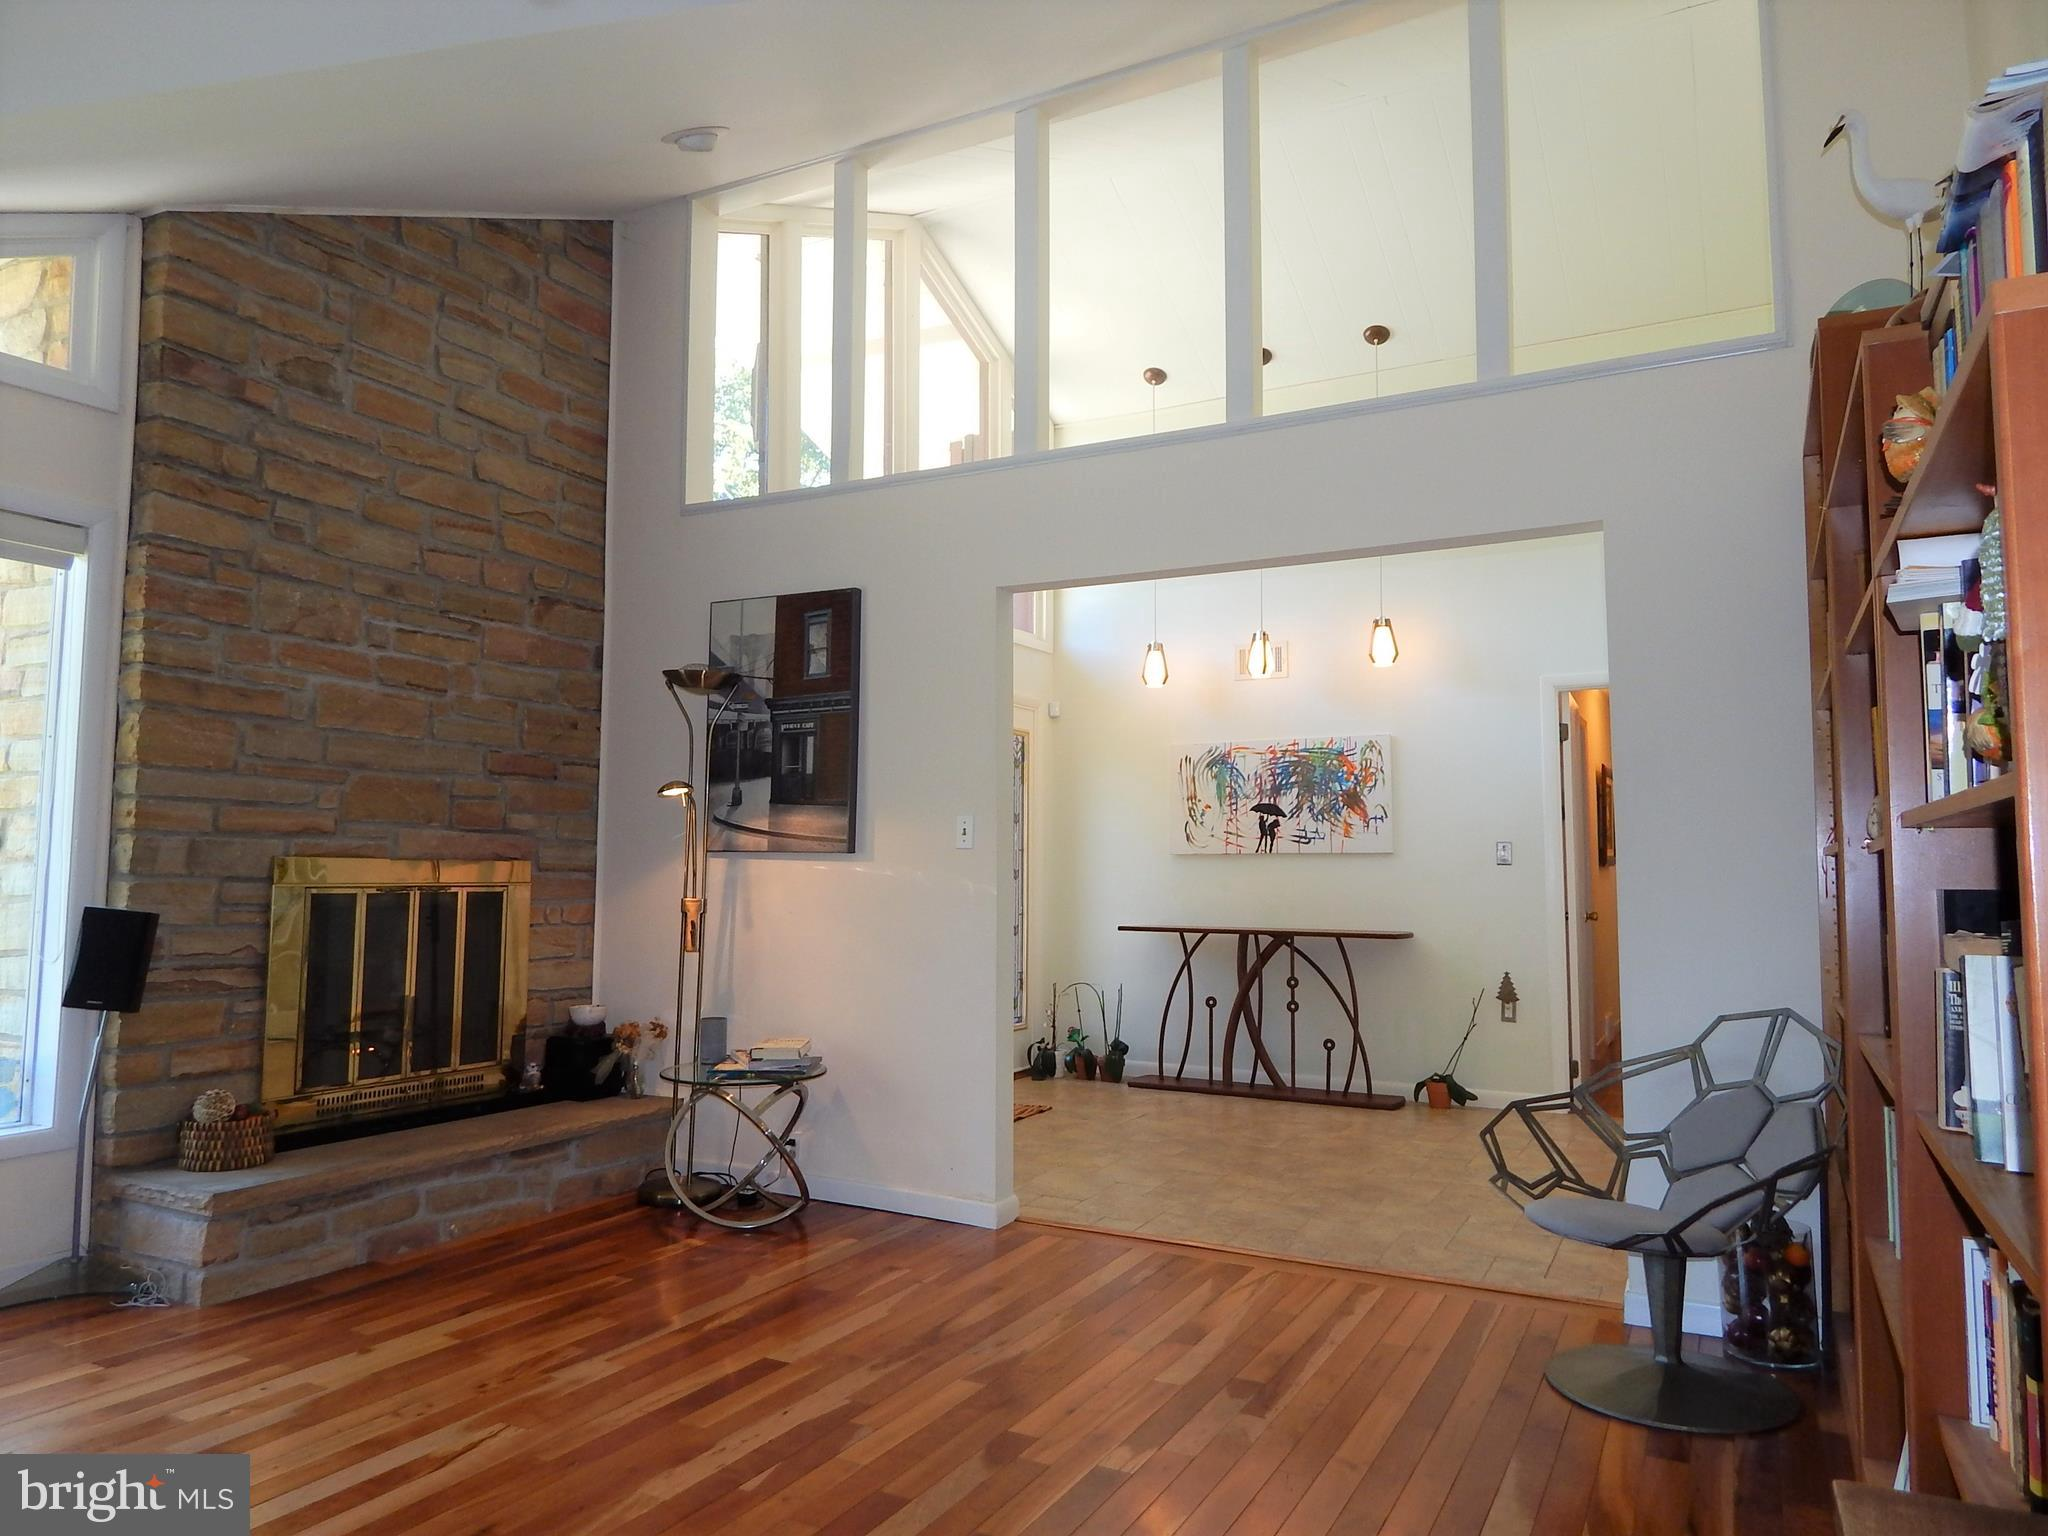 View from living room of the entry foyer